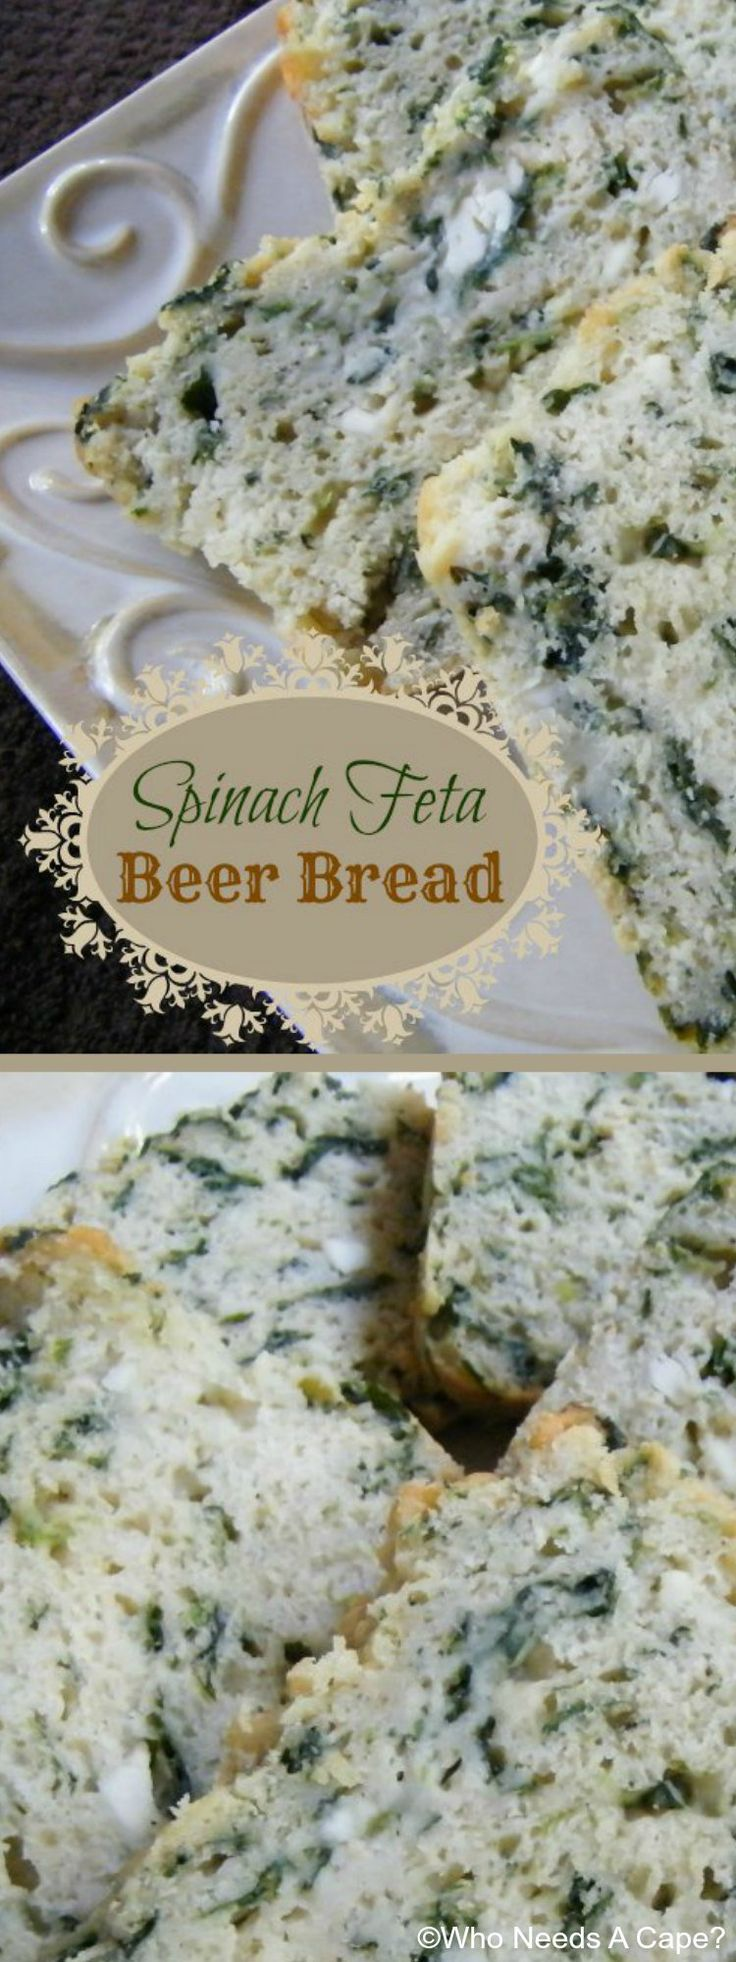 Need a side for soup or stew? Make this tasty Spinach Feta Beer Bread, a twist on classic beer bread. You'll love this, and it is so easy to prepare.